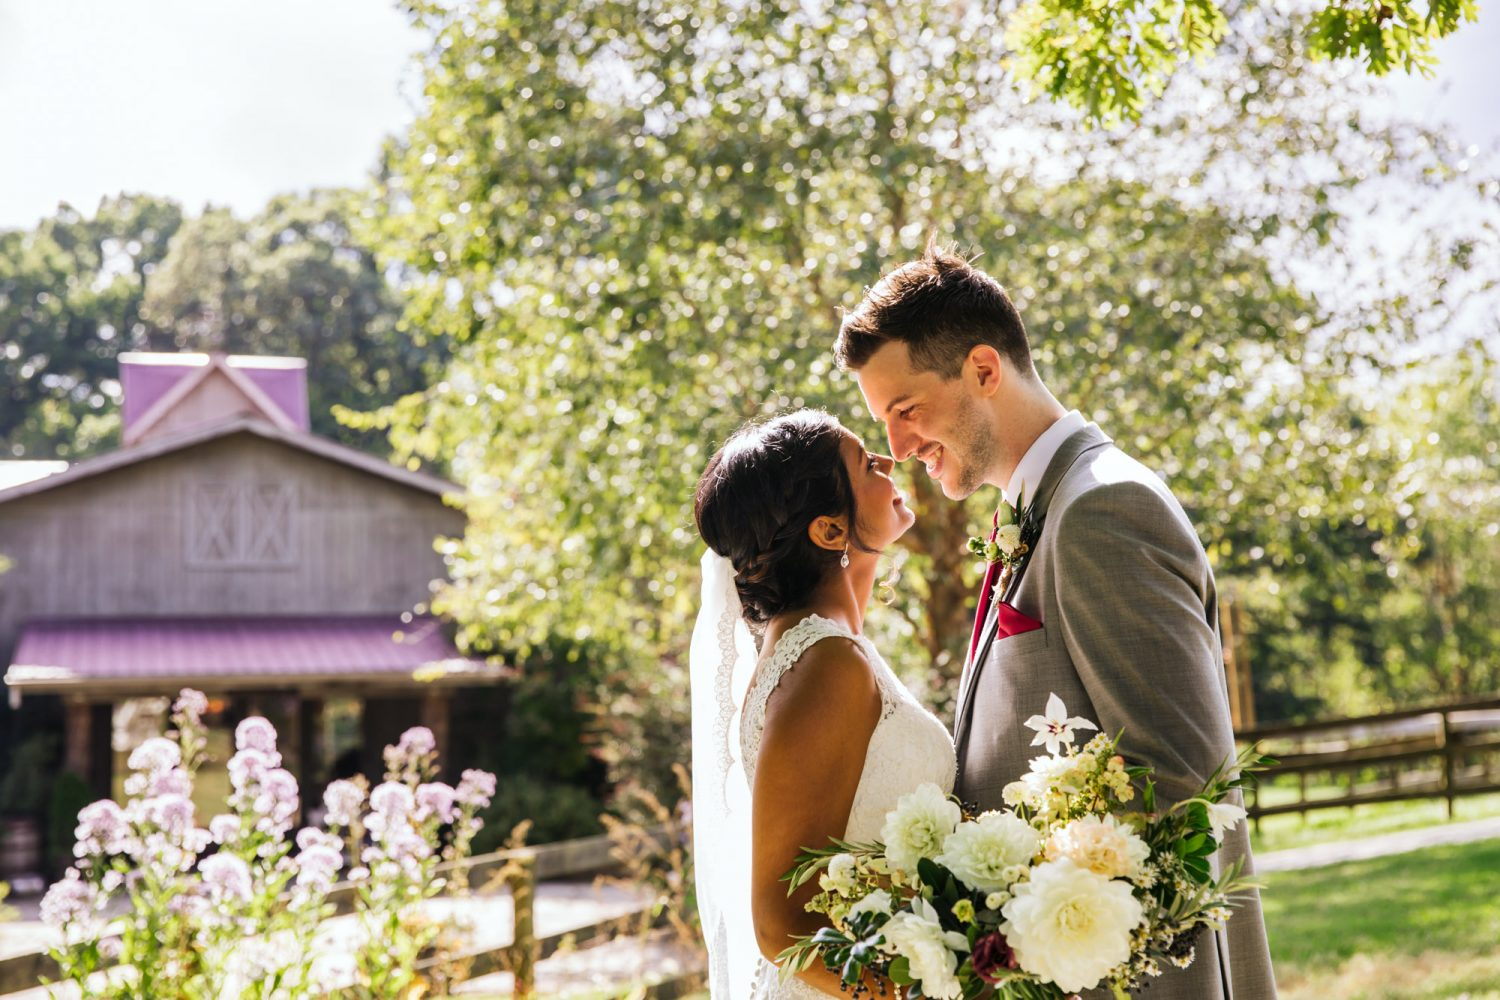 Waynesville NC Wedding Photography | Bride and Groom in front of Wedding Venue